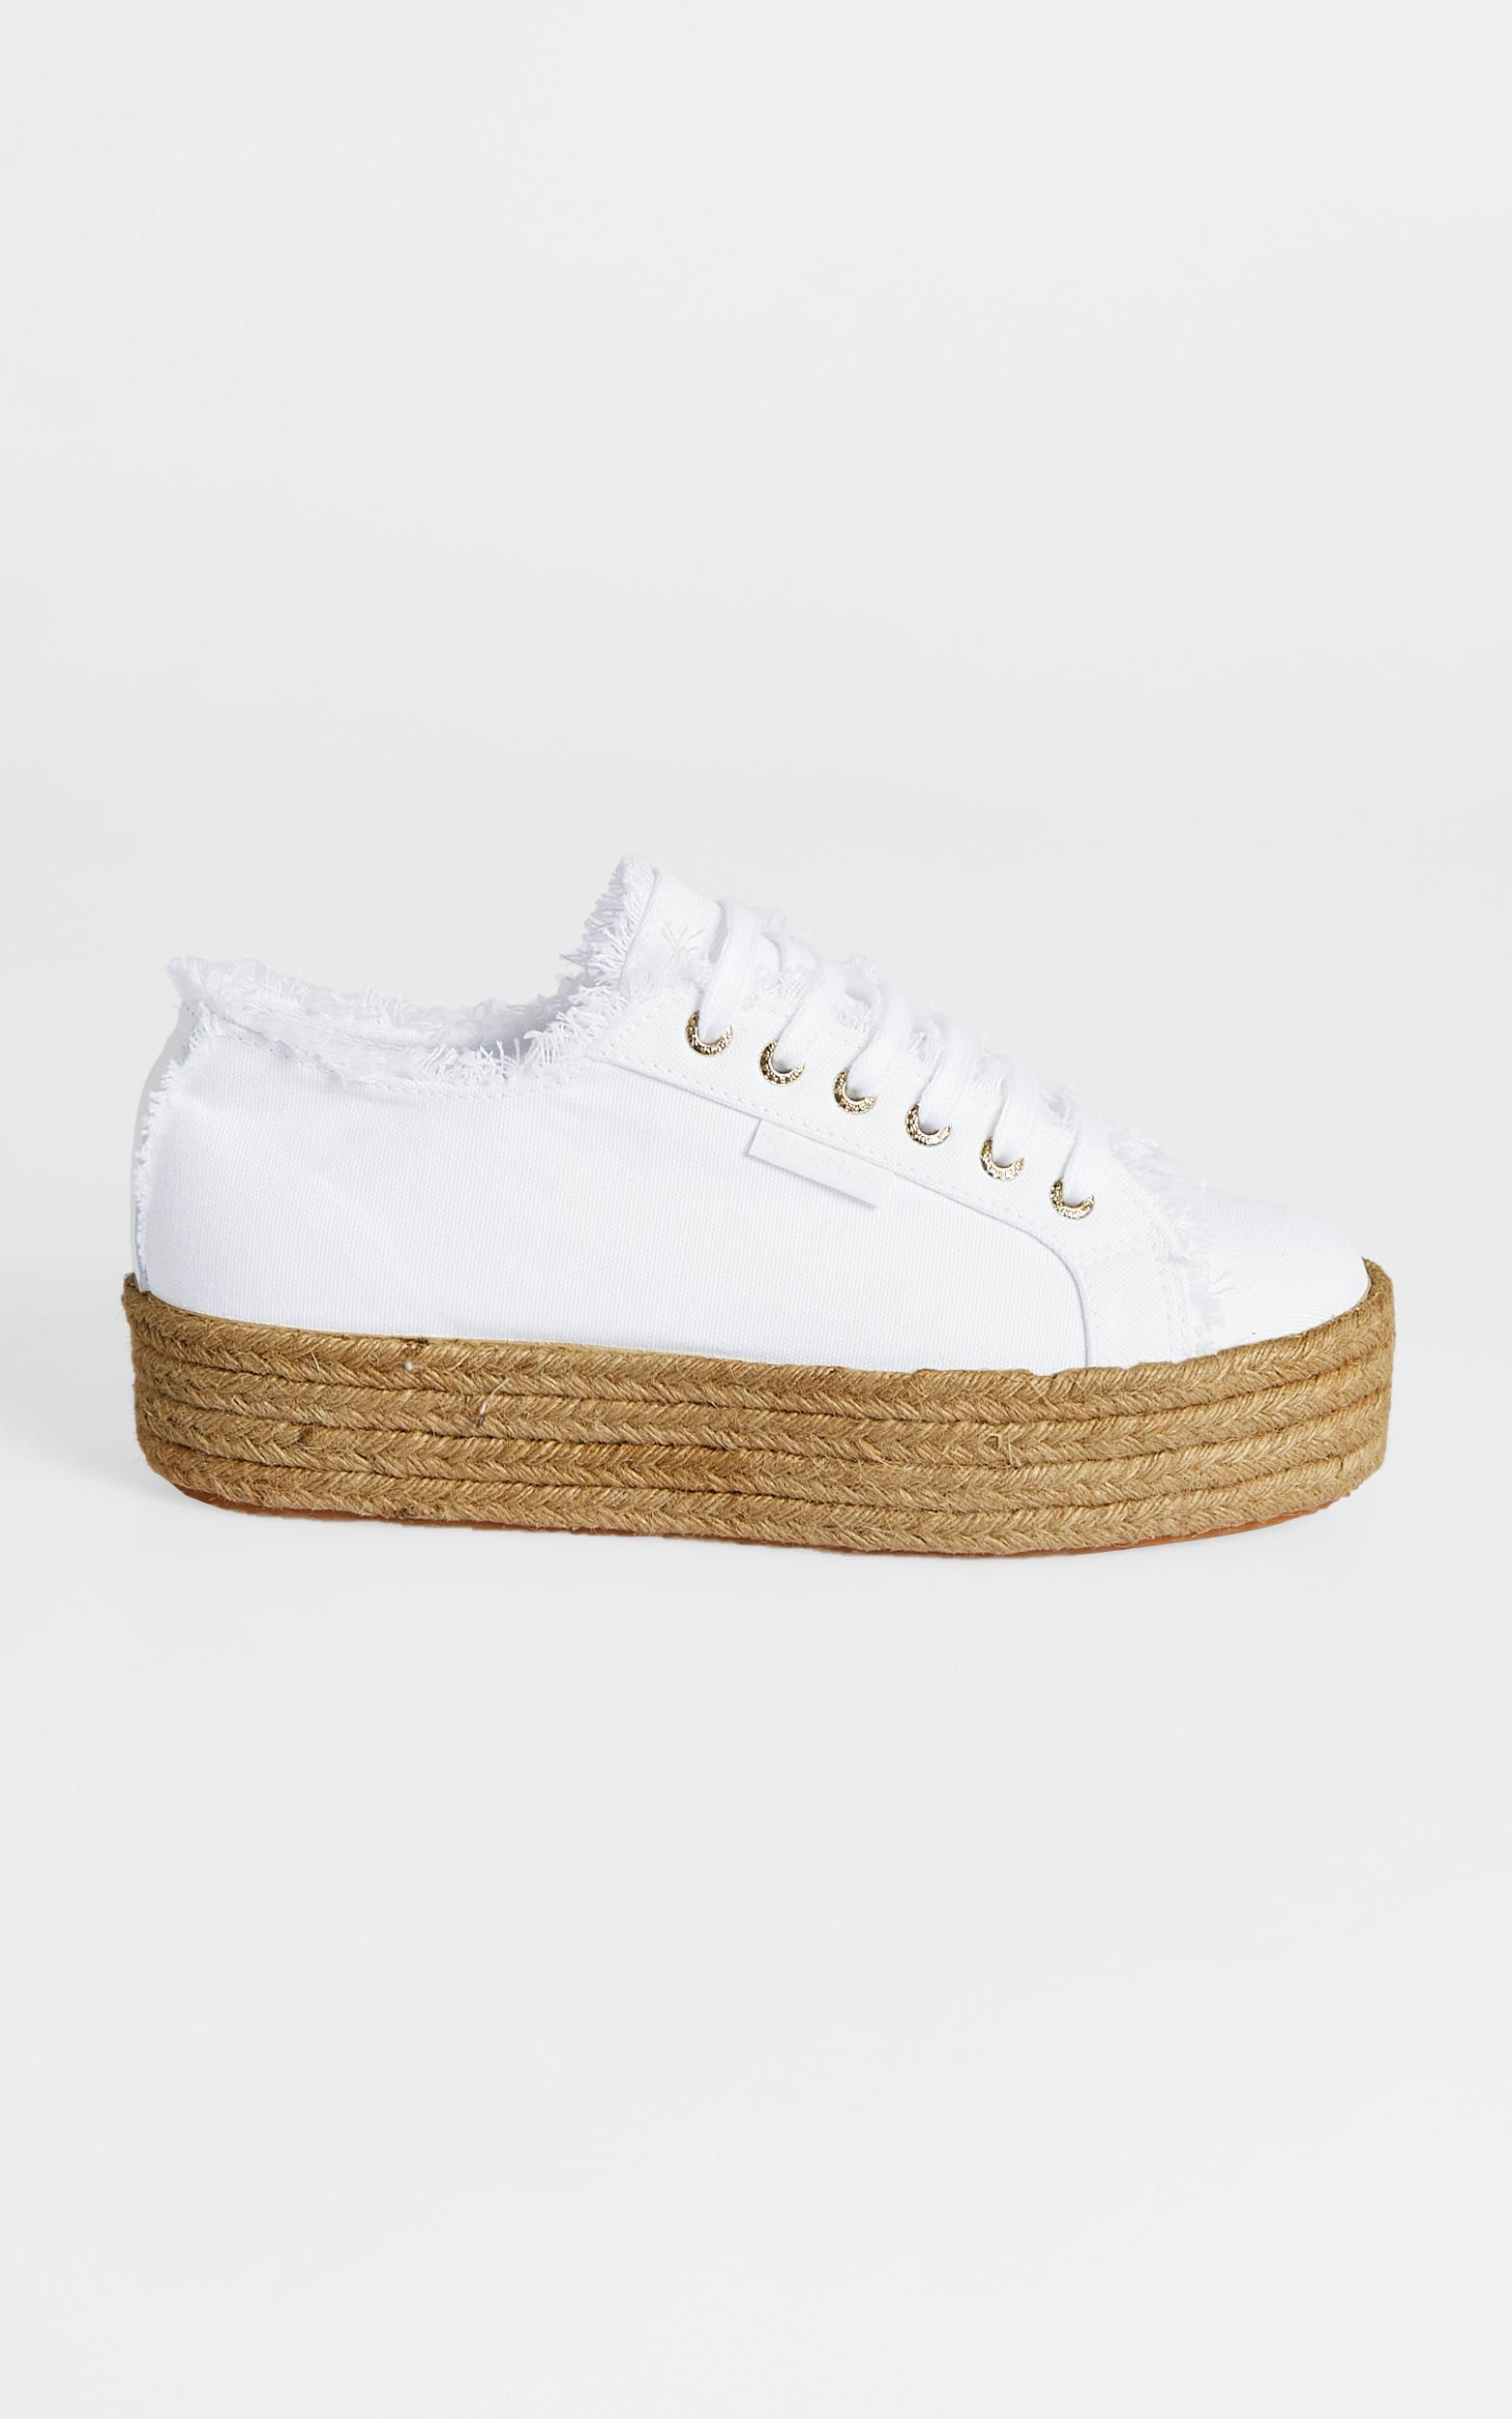 Superga - 2790 Fringed Cotton Rope in 901 White - 5, White, hi-res image number null